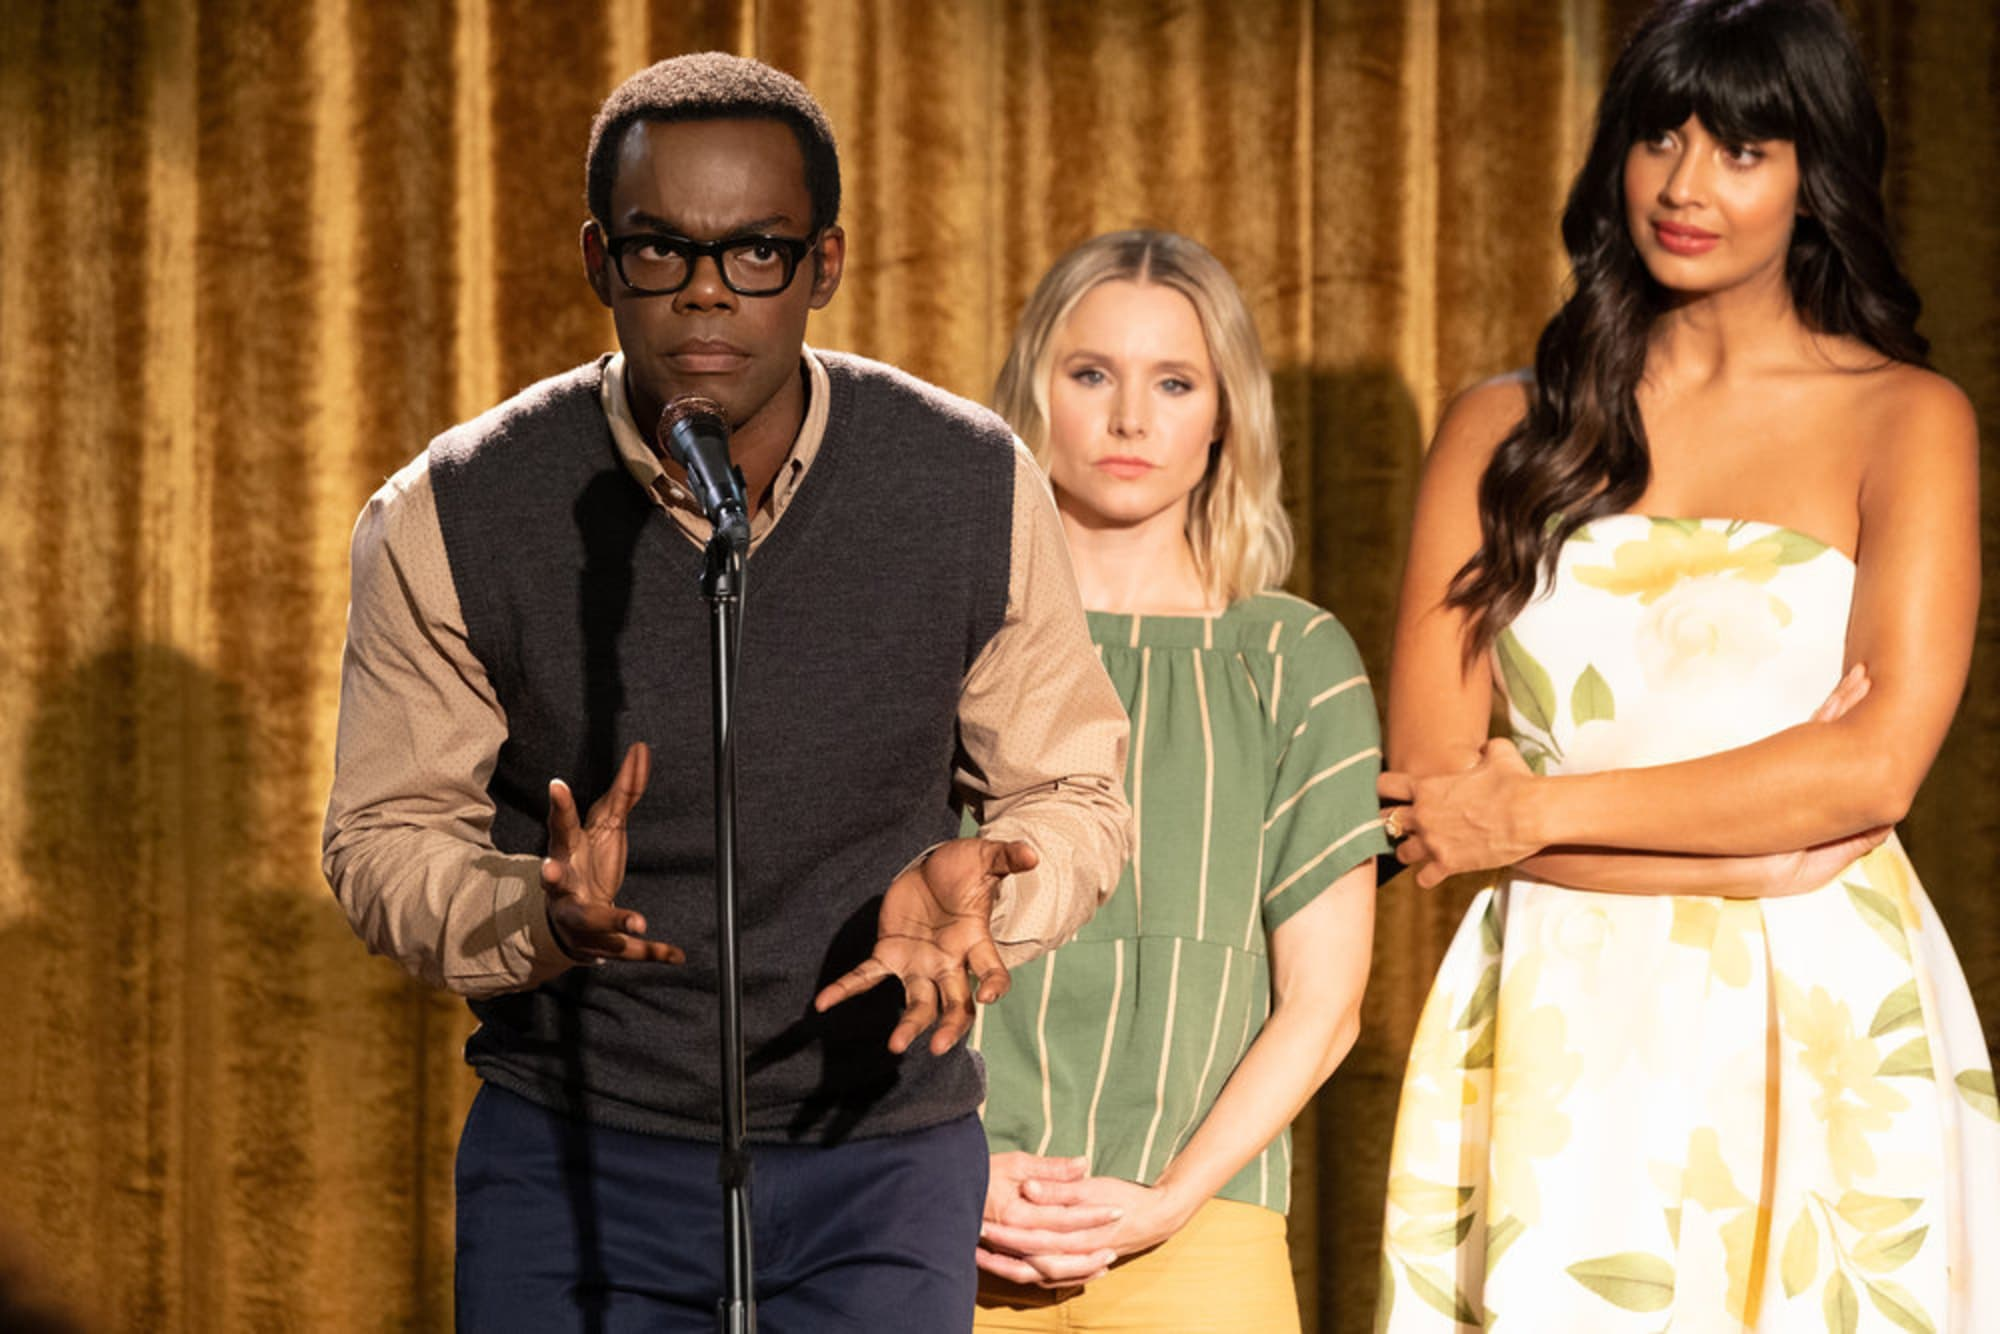 Why did The Good Place end after four seasons?